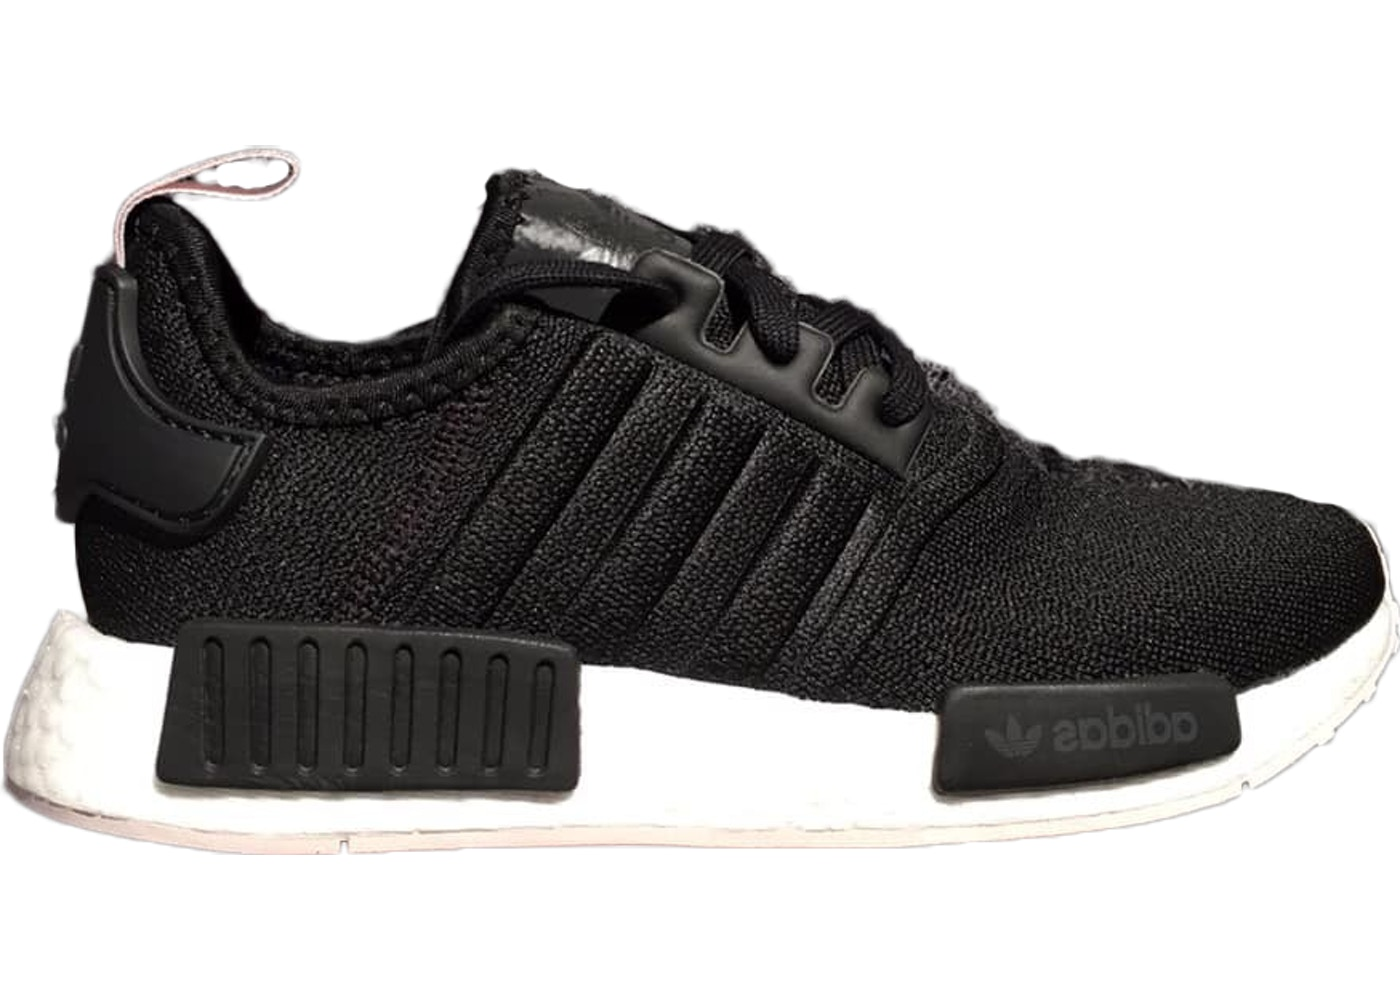 competitive price 71b8e 7f0e8 adidas NMD R1 Core Black Orchid Tint (W)